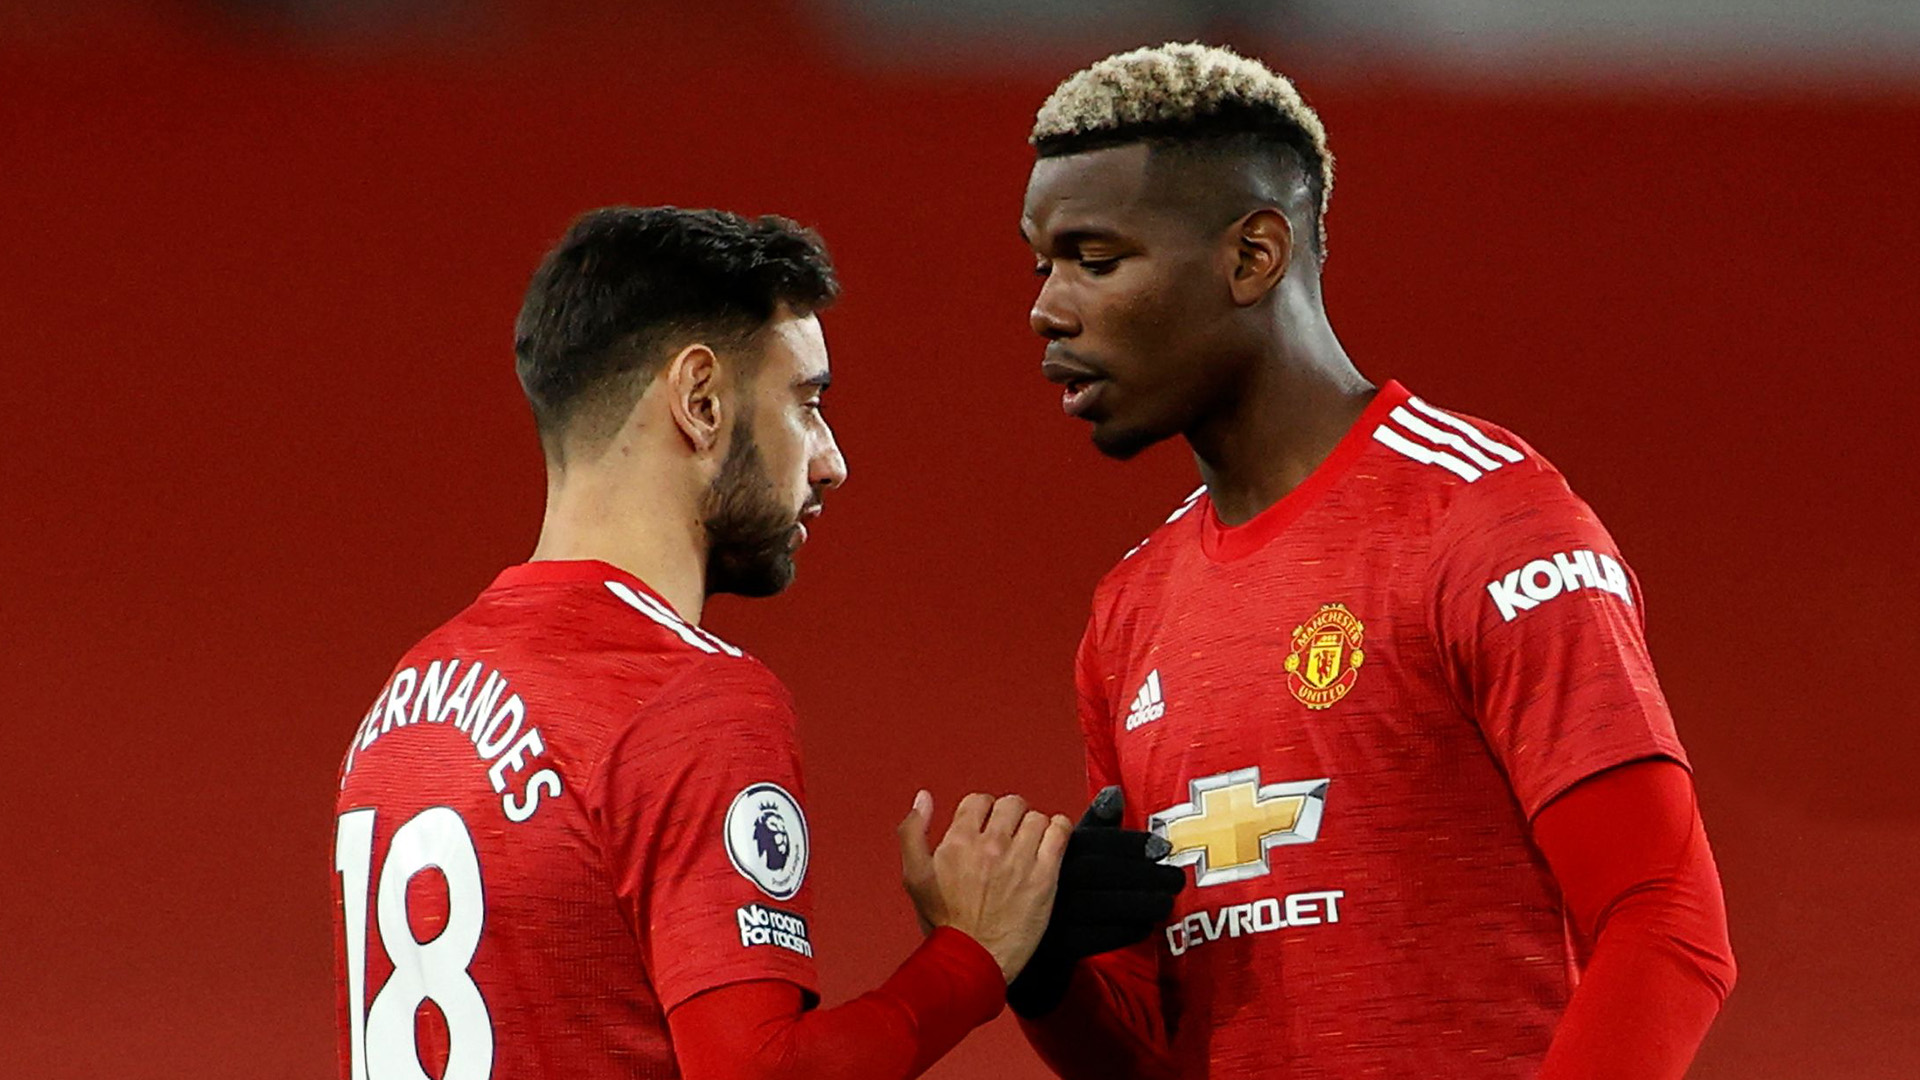 'Fernandes dented Pogba's ego' - Man Utd midfielder has raised his game after 'playing in the shadow' of €55m star, says Parker